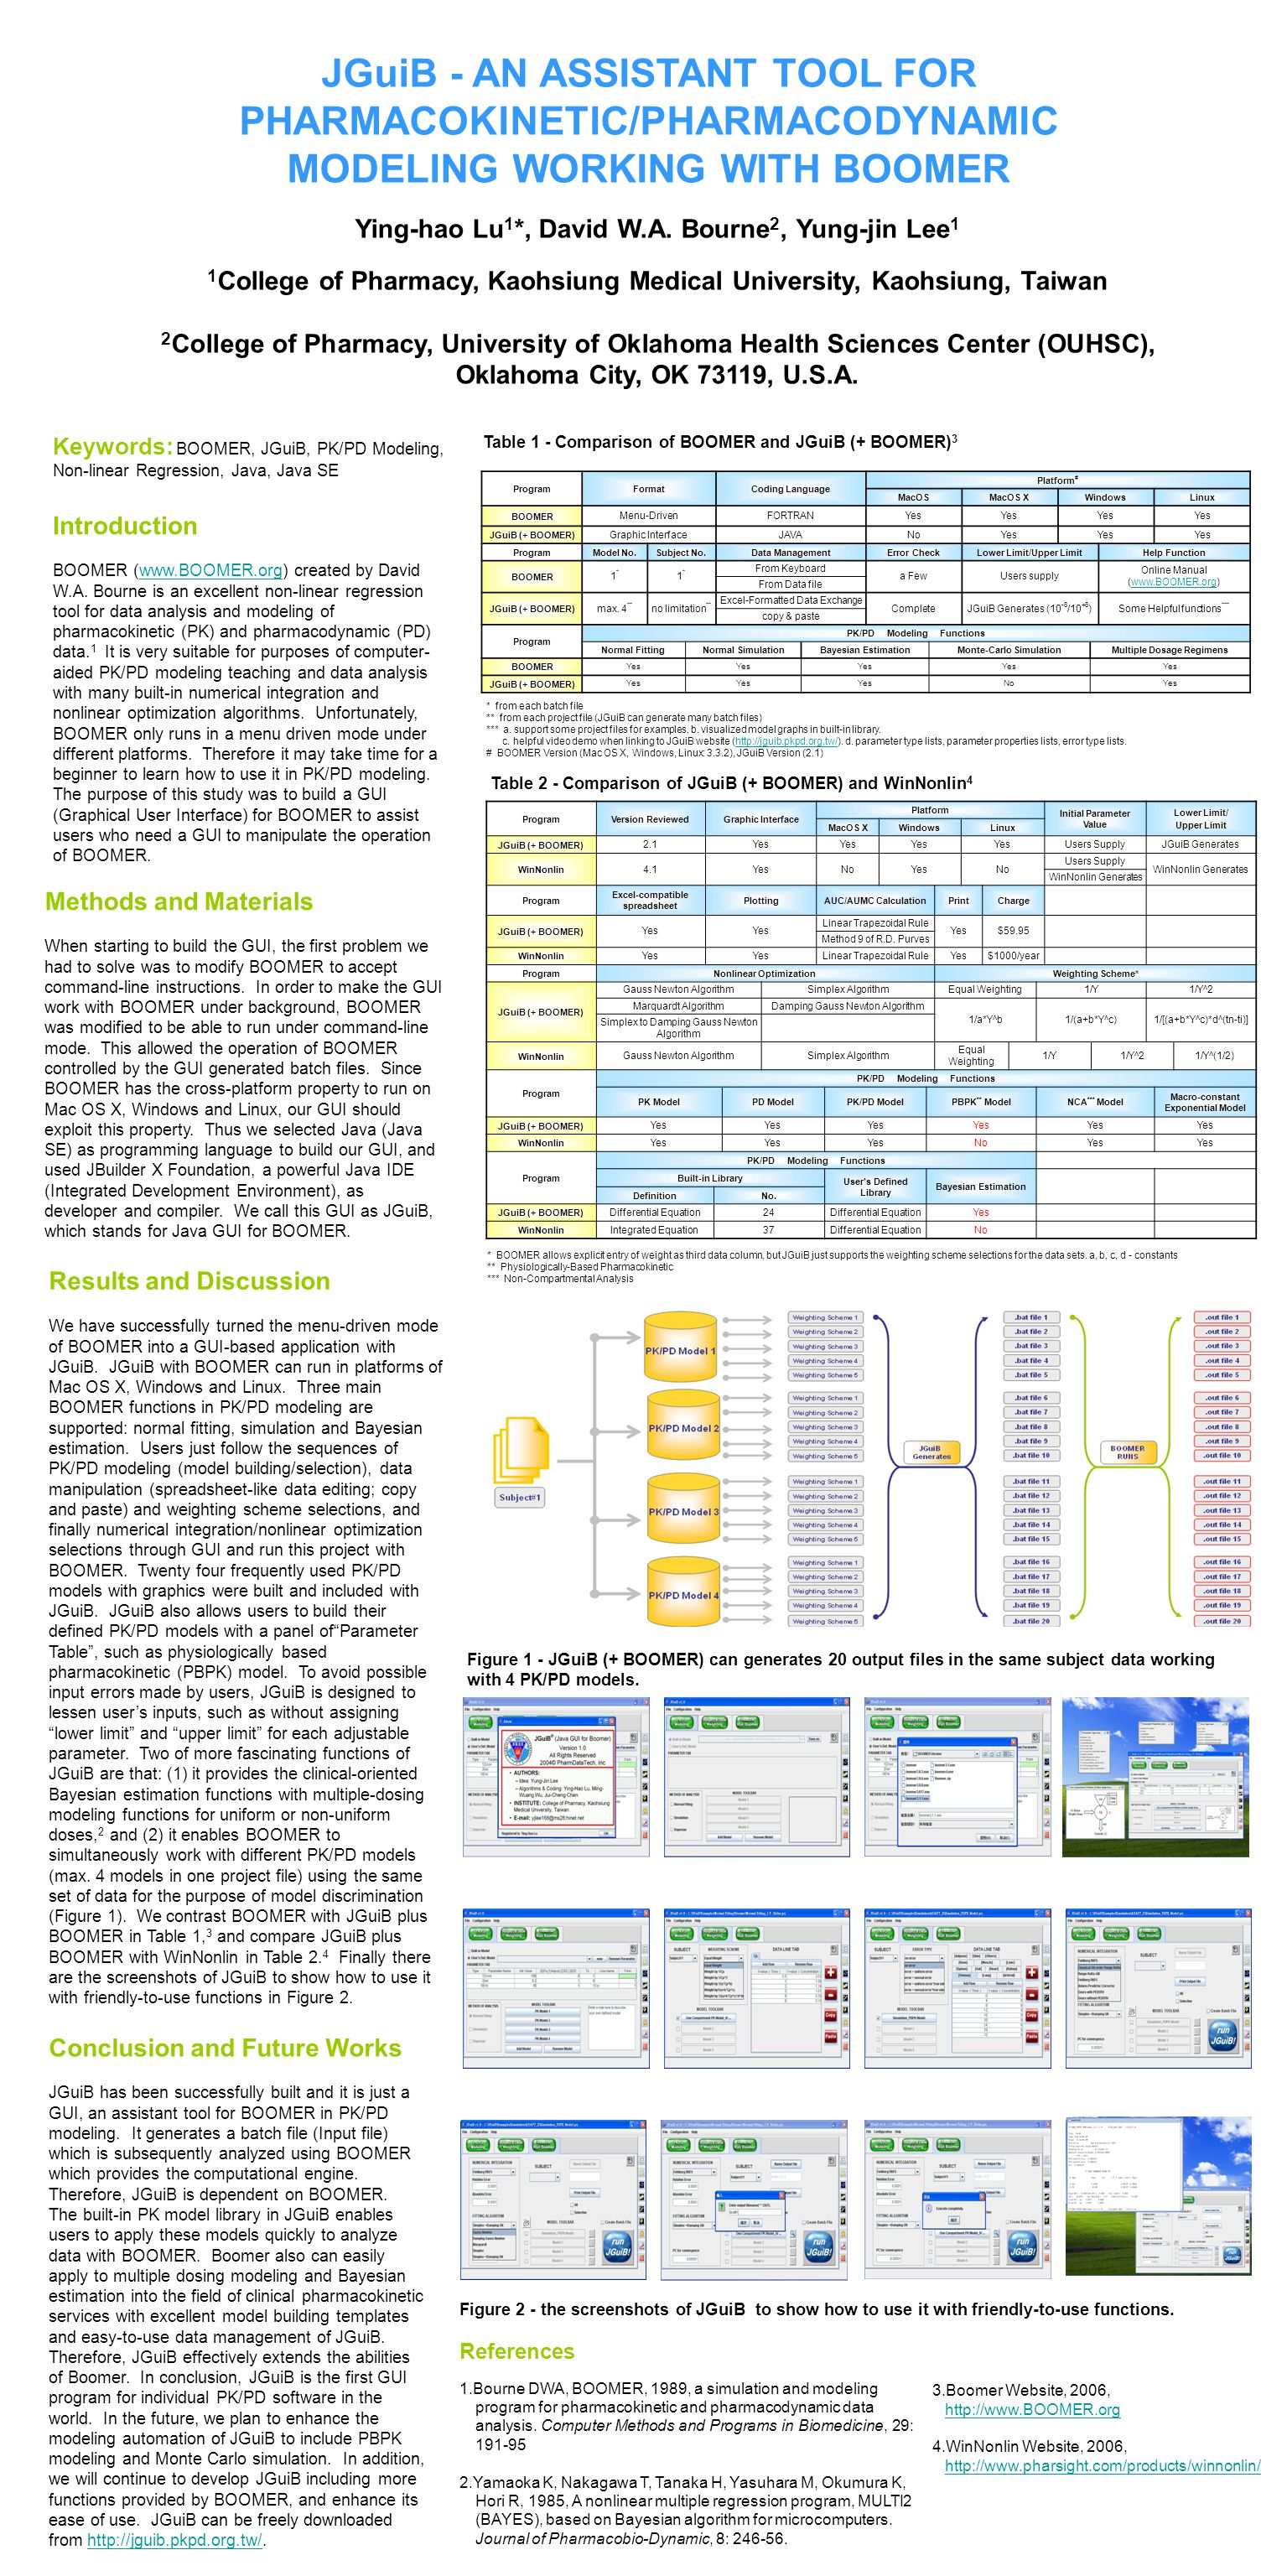 JGuiB - AN ASSISTANT TOOL FOR PHARMACOKINETIC/PHARMACODYNAMIC MODELING WORKING WITH BOOMER Ying-hao Lu 1 *, David W.A. Bourne 2, Yung-jin Lee 1 1 Coll